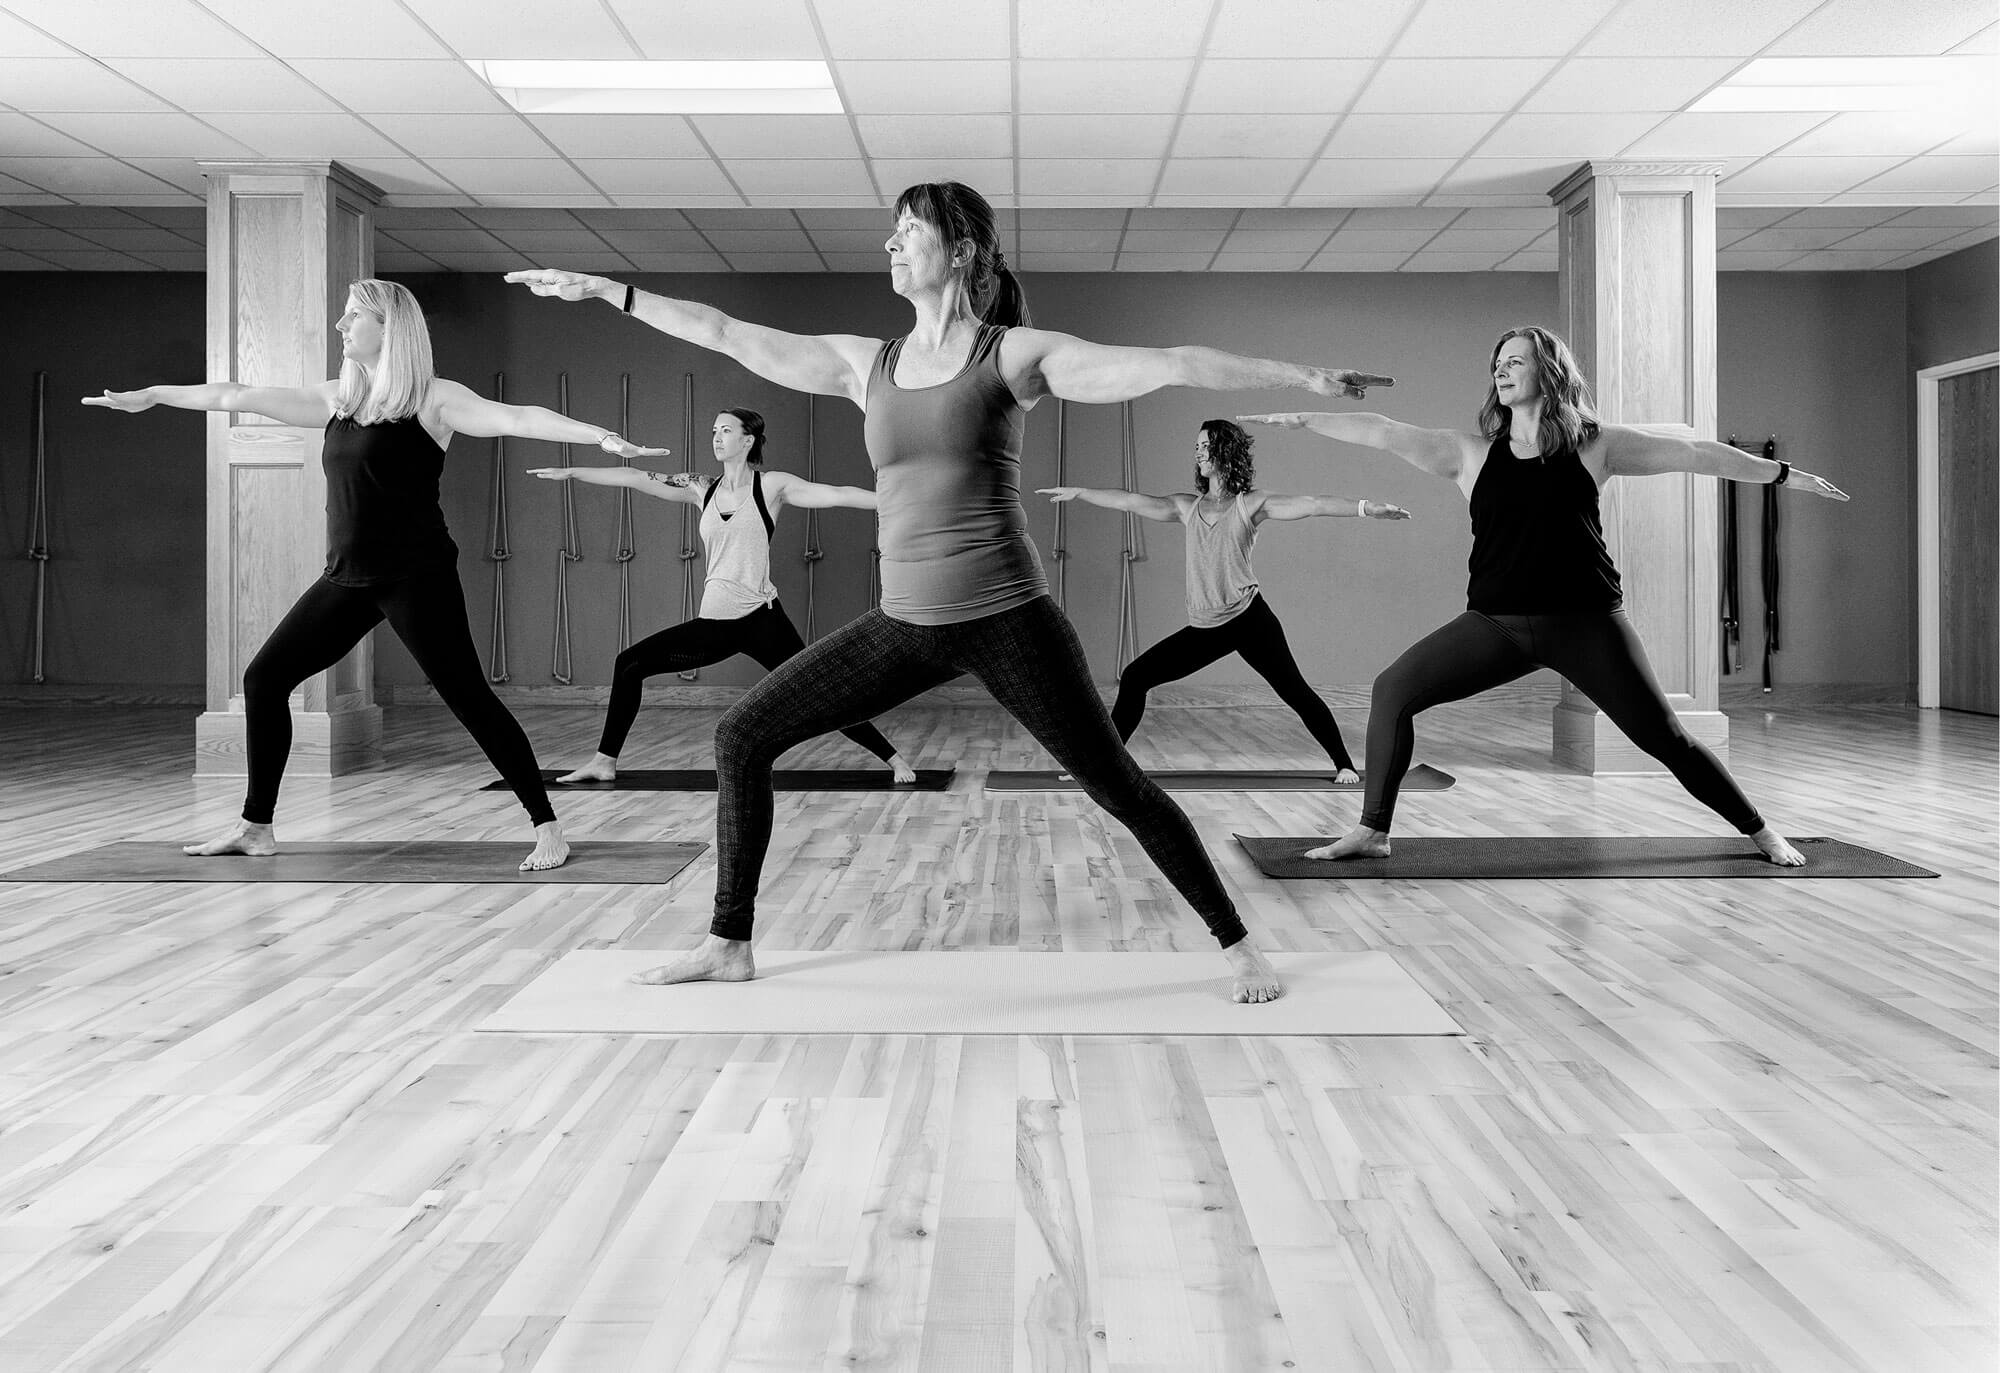 Yoga class in the middle of a pose